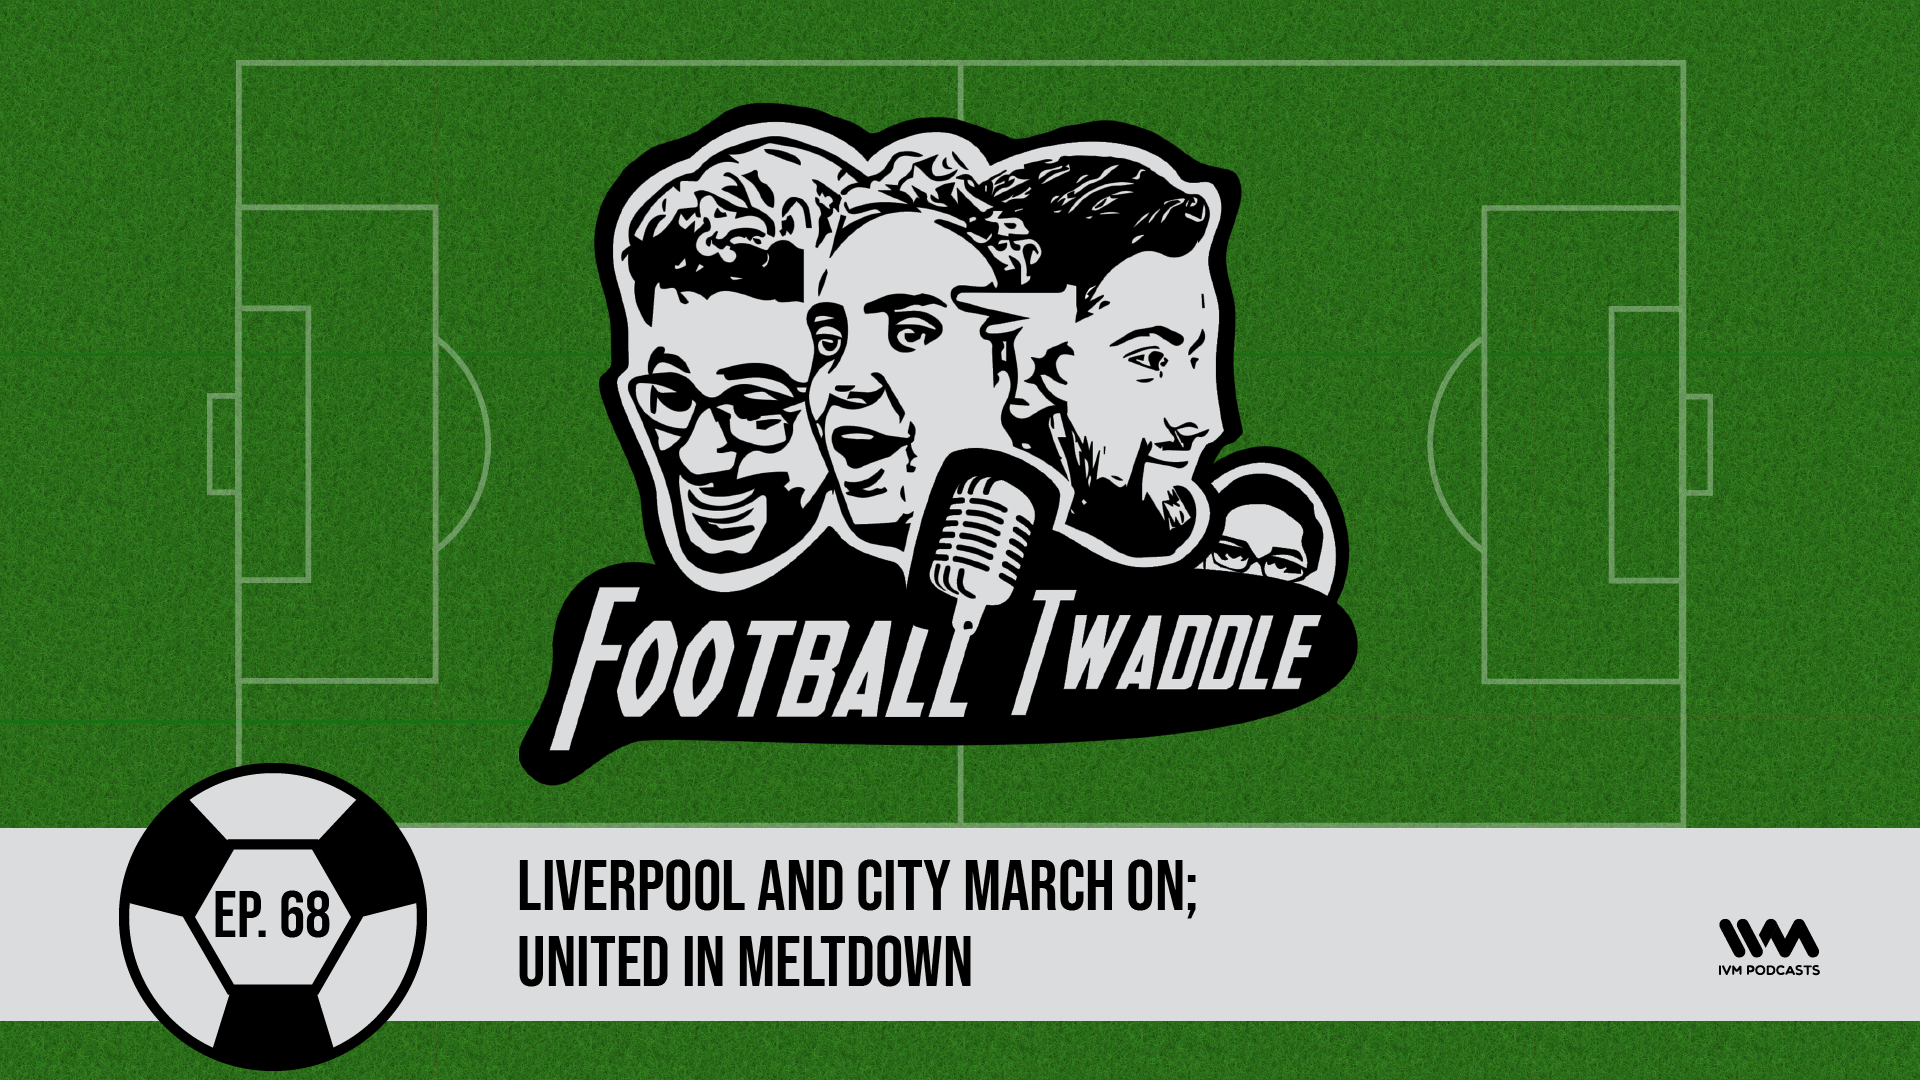 FootballTwaddleEpisode68.png